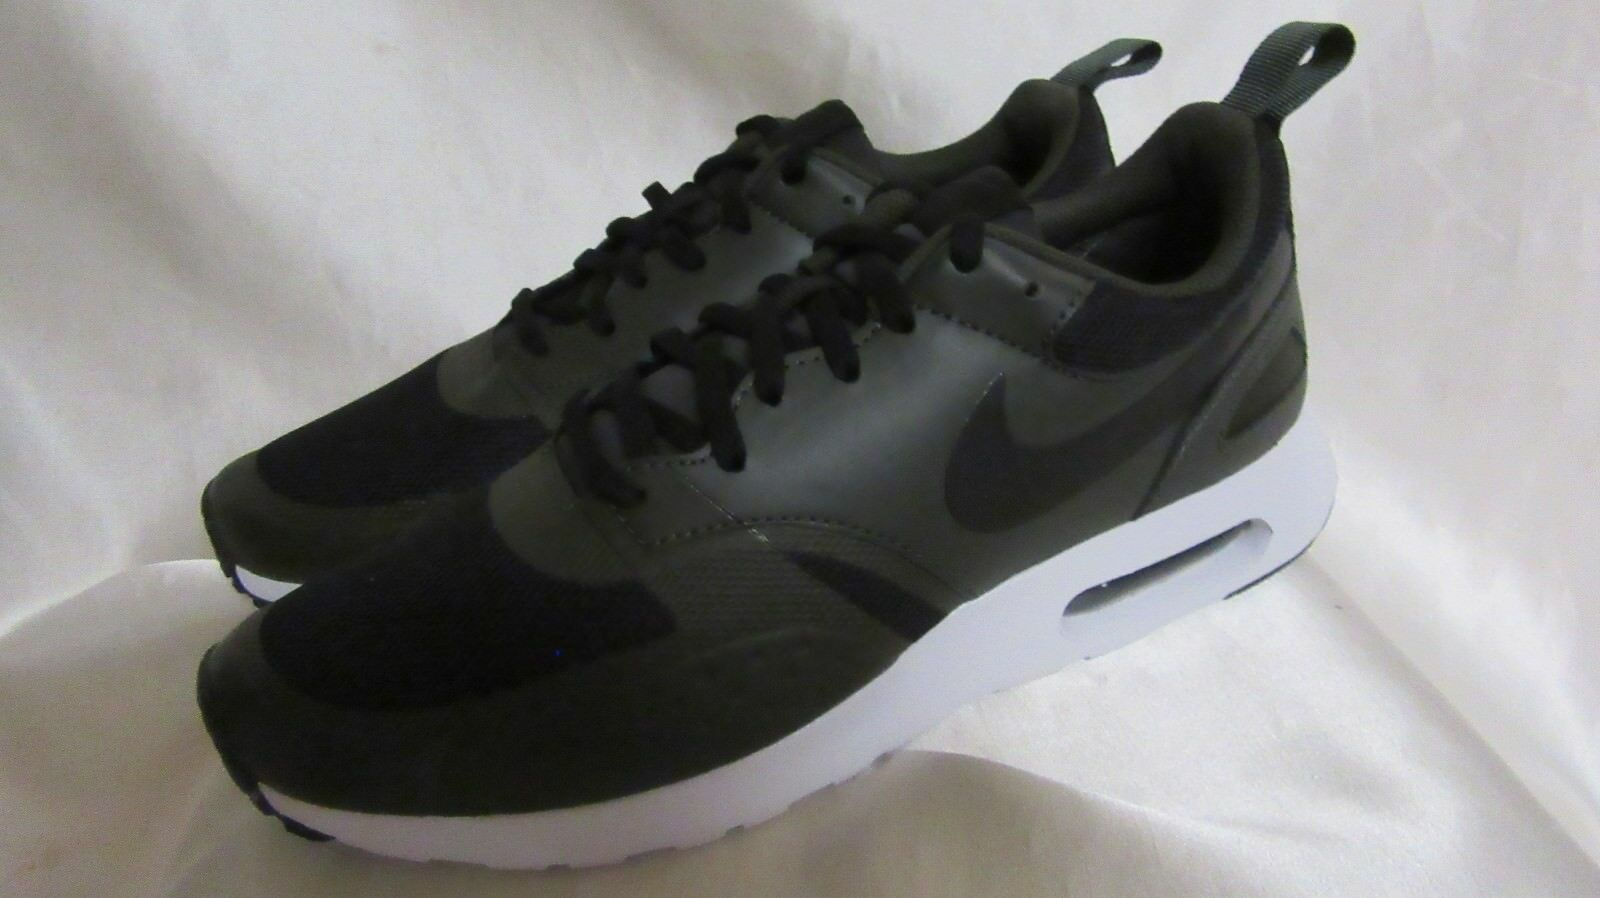 MEN`S NIKE AIR MAX VISION ATHLETIC SNEAKERS SIZE 10 M NEW BLACK